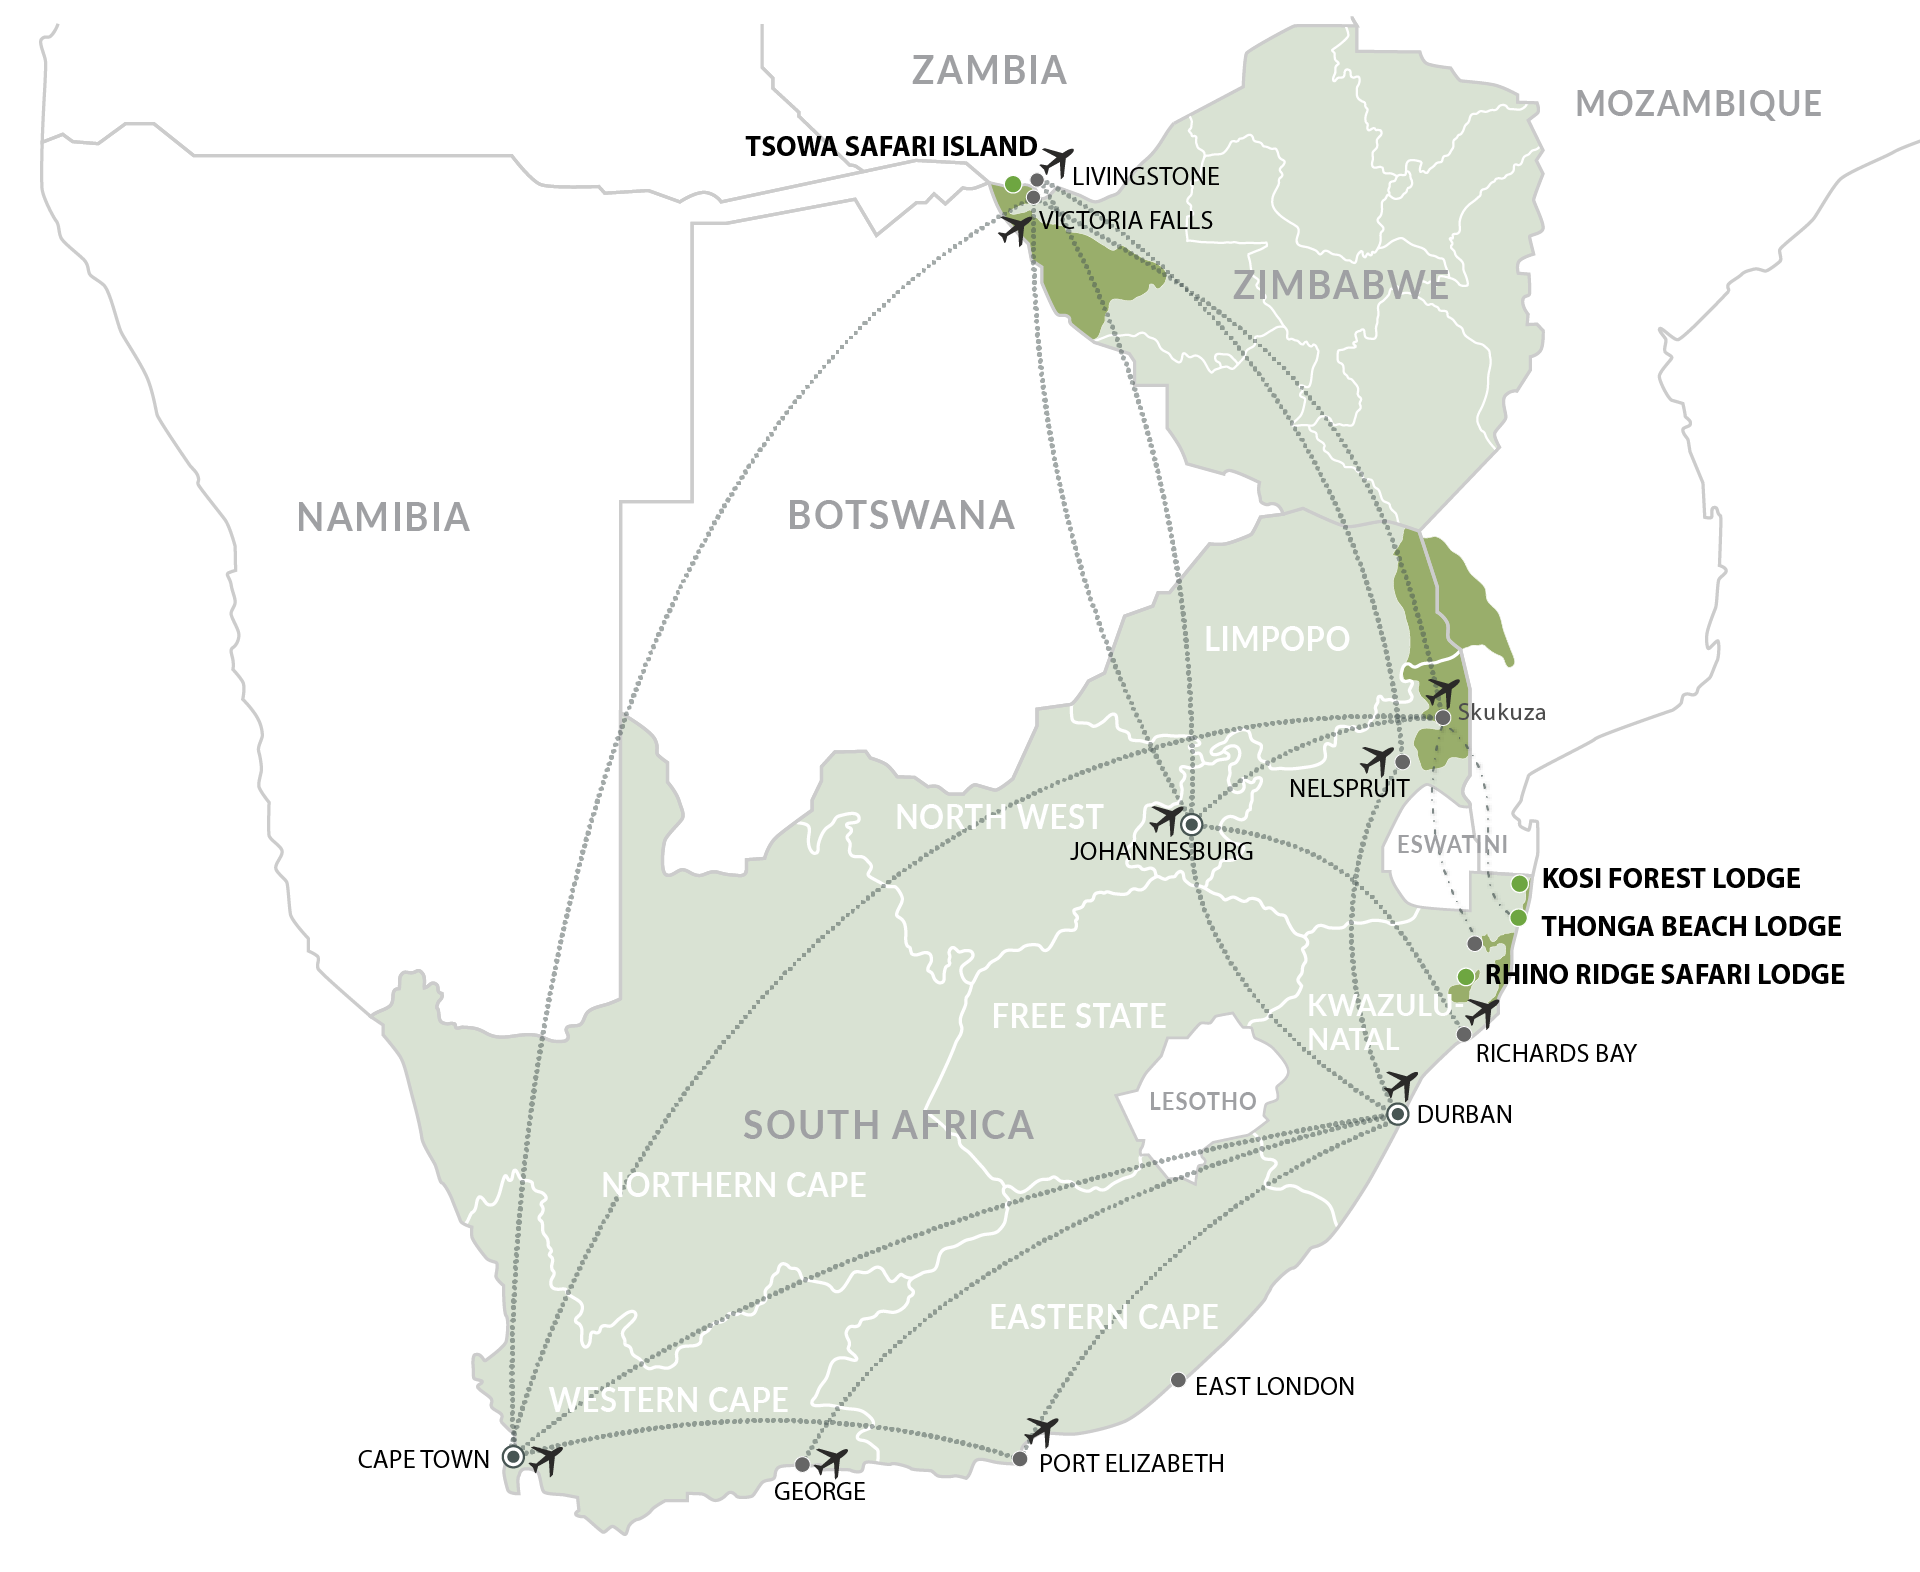 IAL MAPS - Southern Africa_Individual Lodges